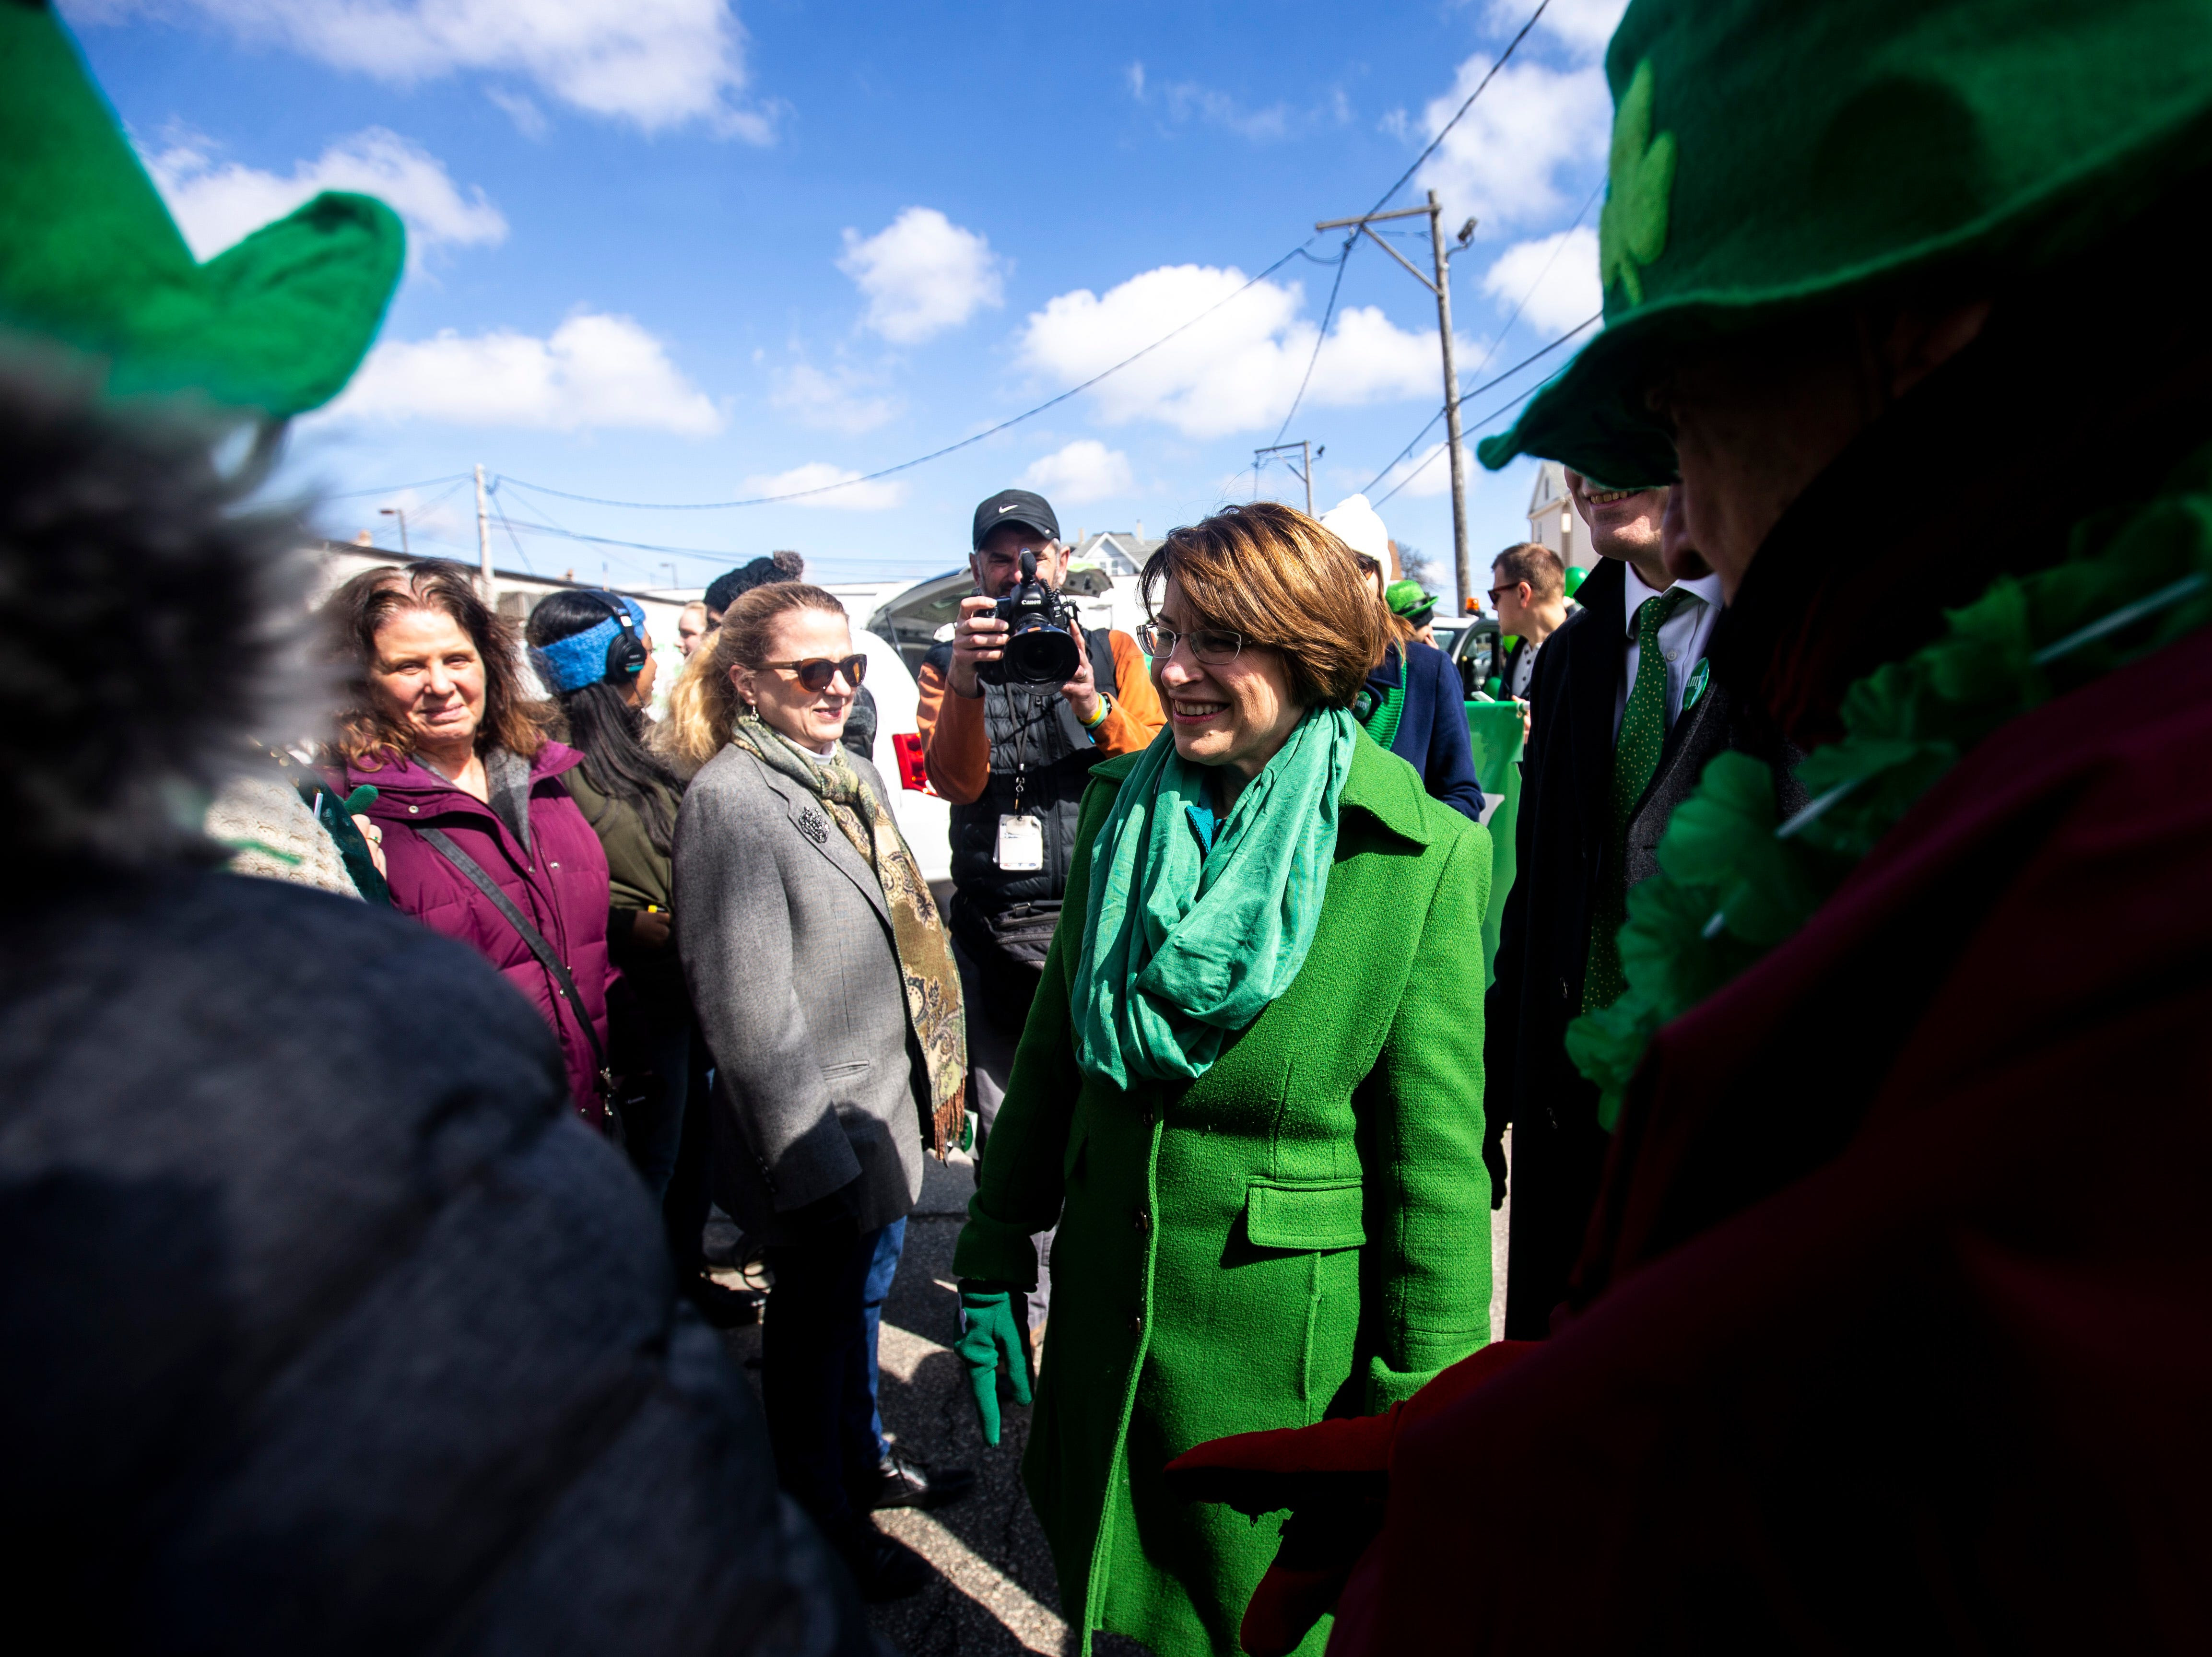 U.S. Sen. Amy Klobuchar, D-Minn., meets with members of the Linn County Democrats before walking with them in the Saint Patrick's Day Parade Society (SaPaDaPaSo) parade on Sunday, March 17, 2019, in downtown Cedar Rapids, Iowa.